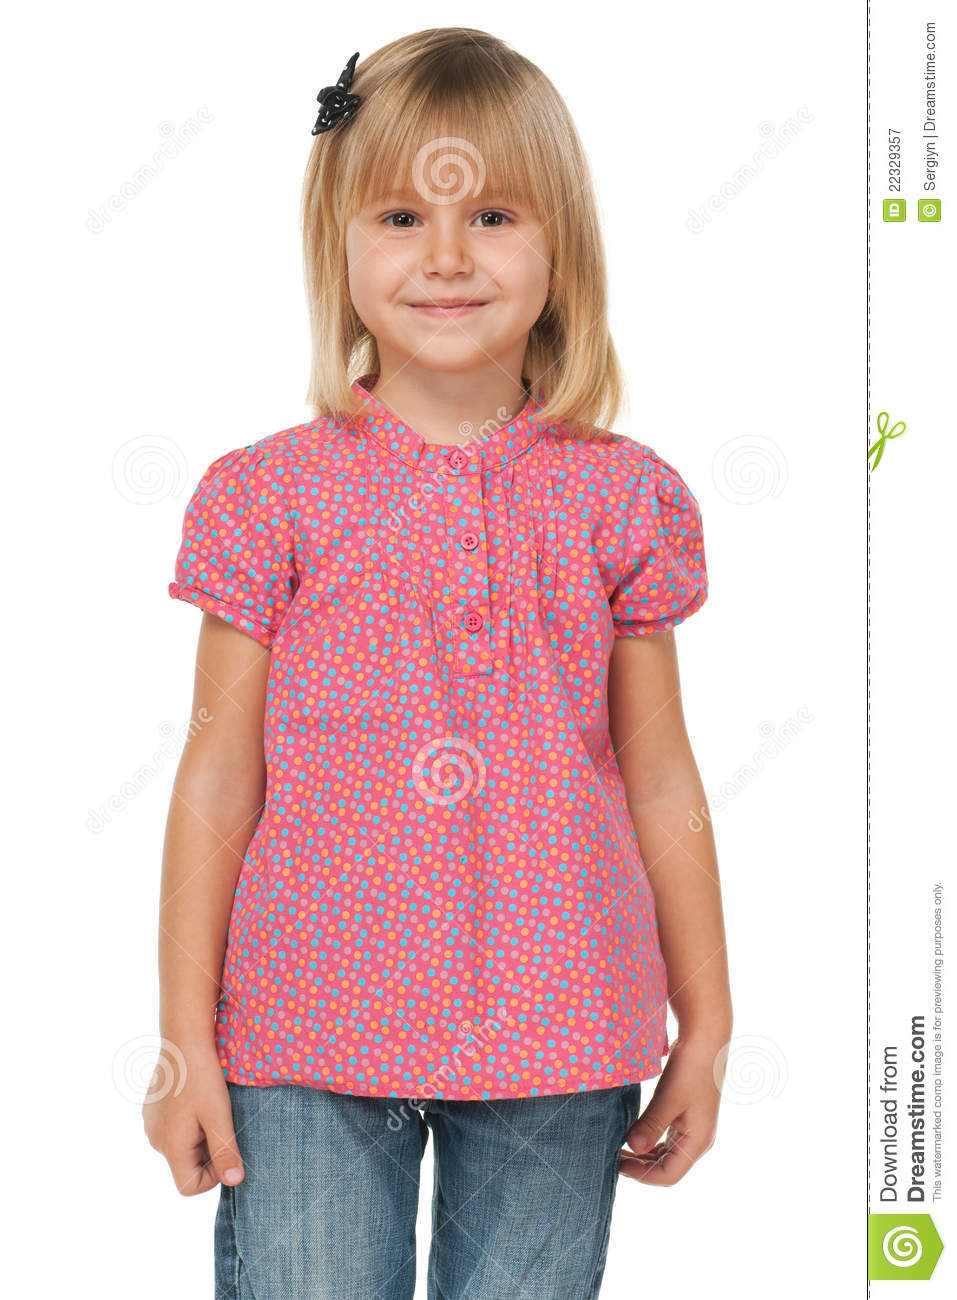 Girls' Polo Shirt Girls' Oxford Shirt Girls' Baseball Cap Girls' Polo Dress Print Your Own Baby Back; Baby; Our Favorites Polo Shirt Oxford Shirt Polo Dress Airy flutter sleeves enhance the feminine spirit of this polka-dot jacquard dress. Straight fit. Intended to hit at the knee. Size Petite 8 has a 36